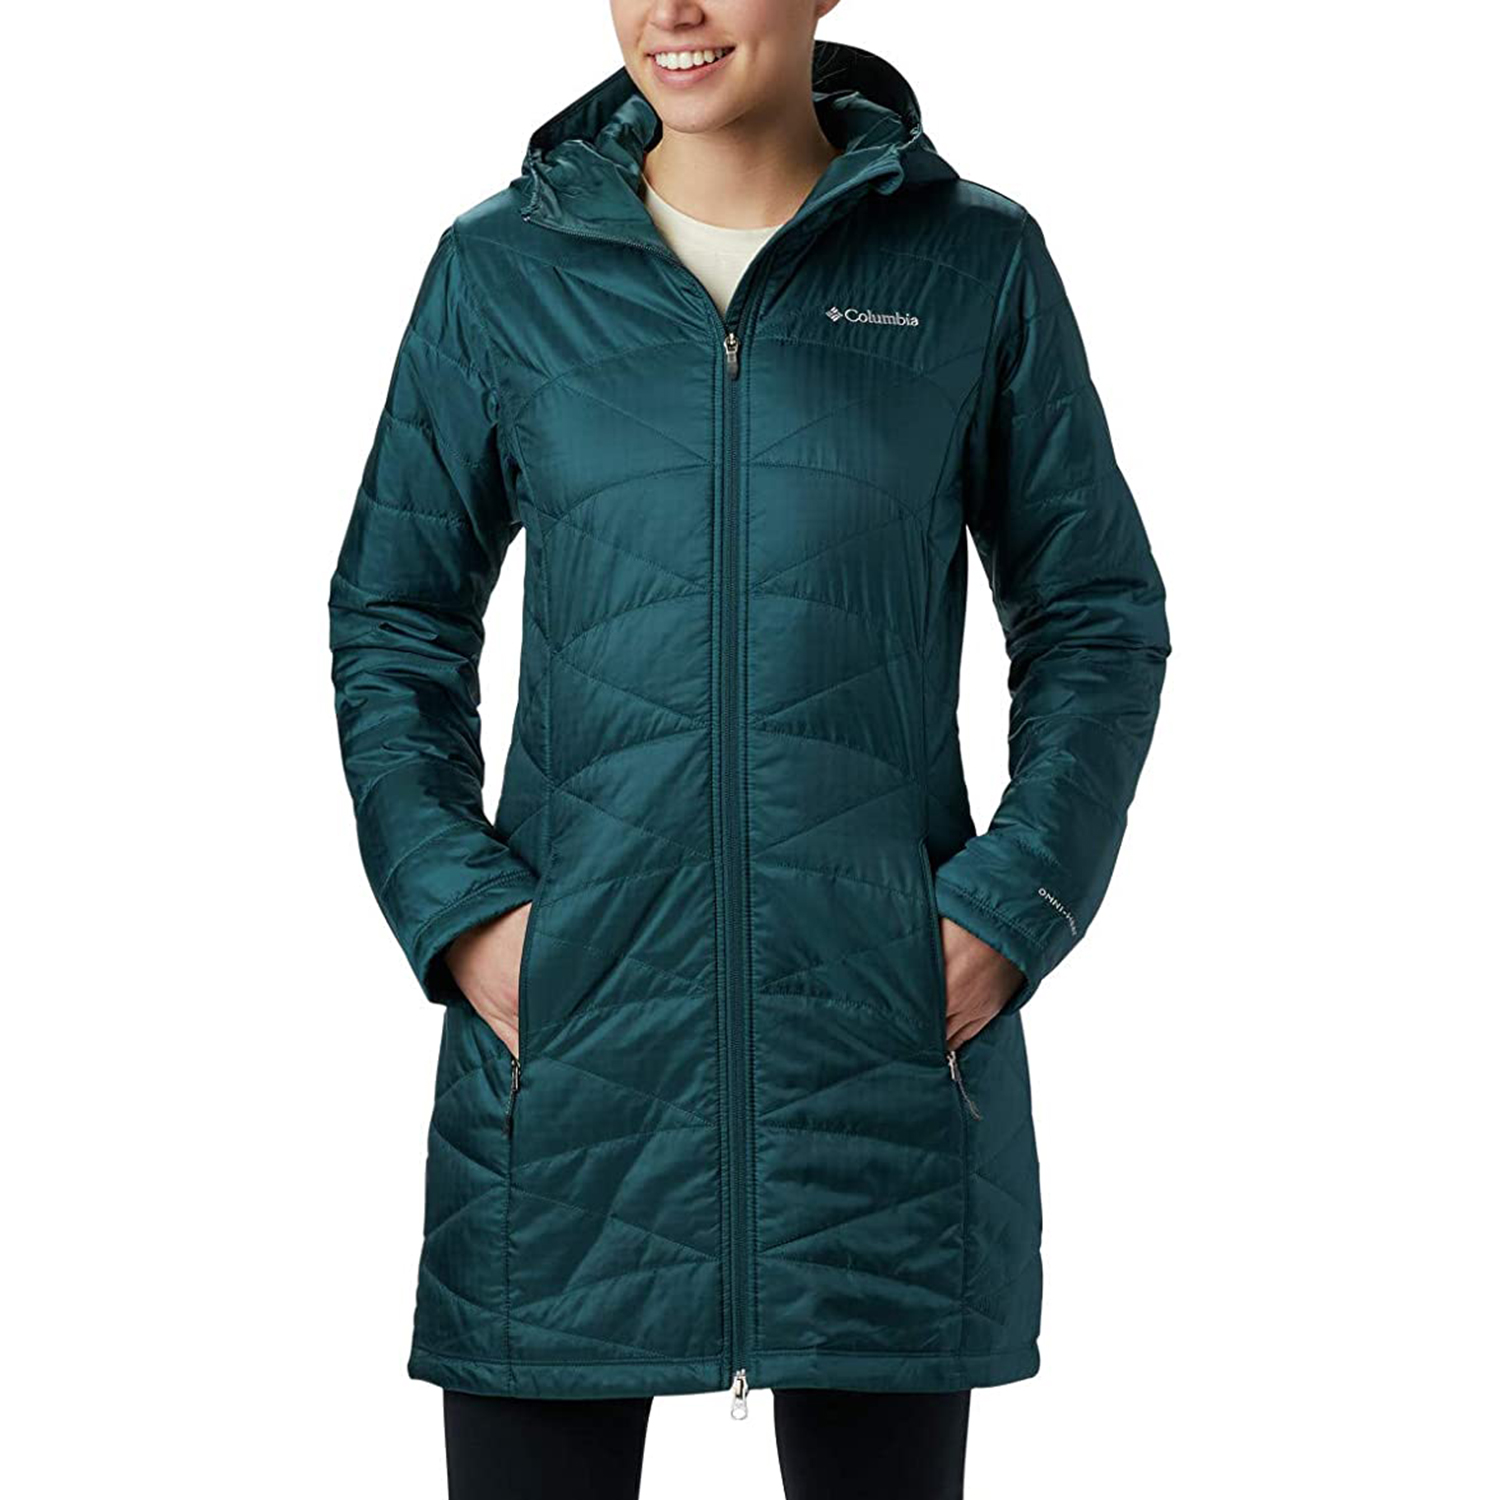 Columbia Women's Mighty Lite Hooded Jacket Coat